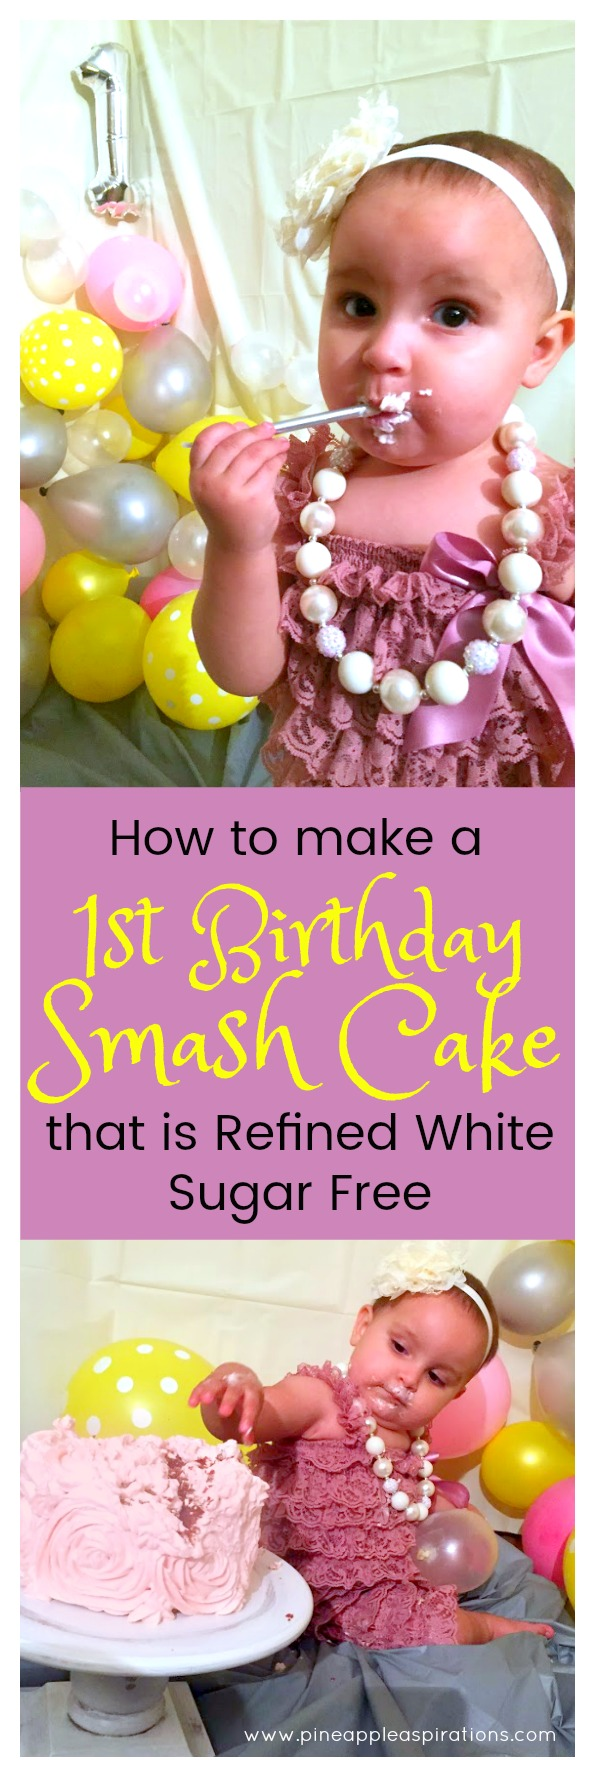 How to Make a 1st Birthday Smash Cake that is Refined White Sugar Free